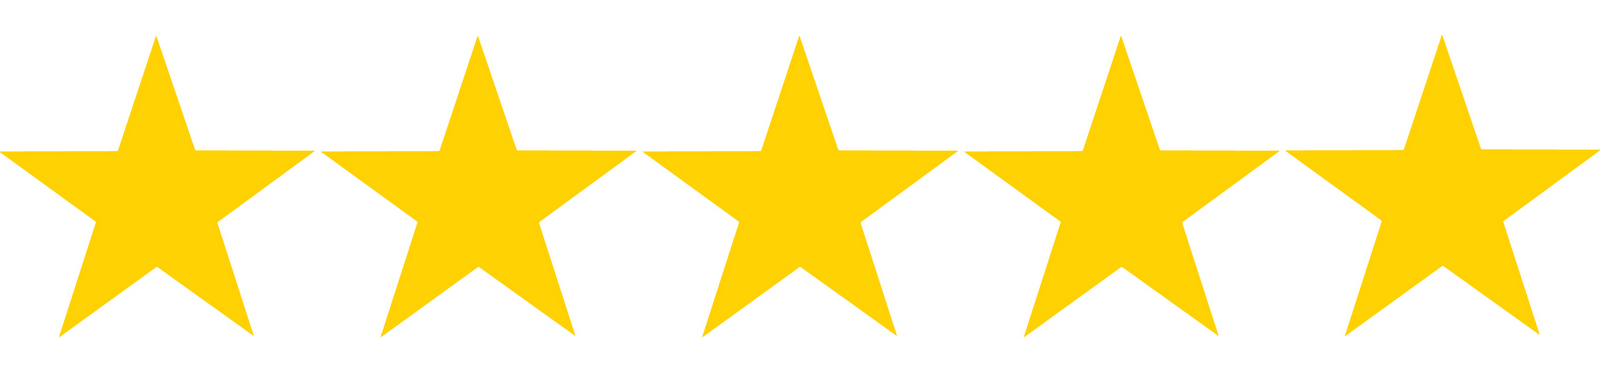 Image result for 5-star amazon logo